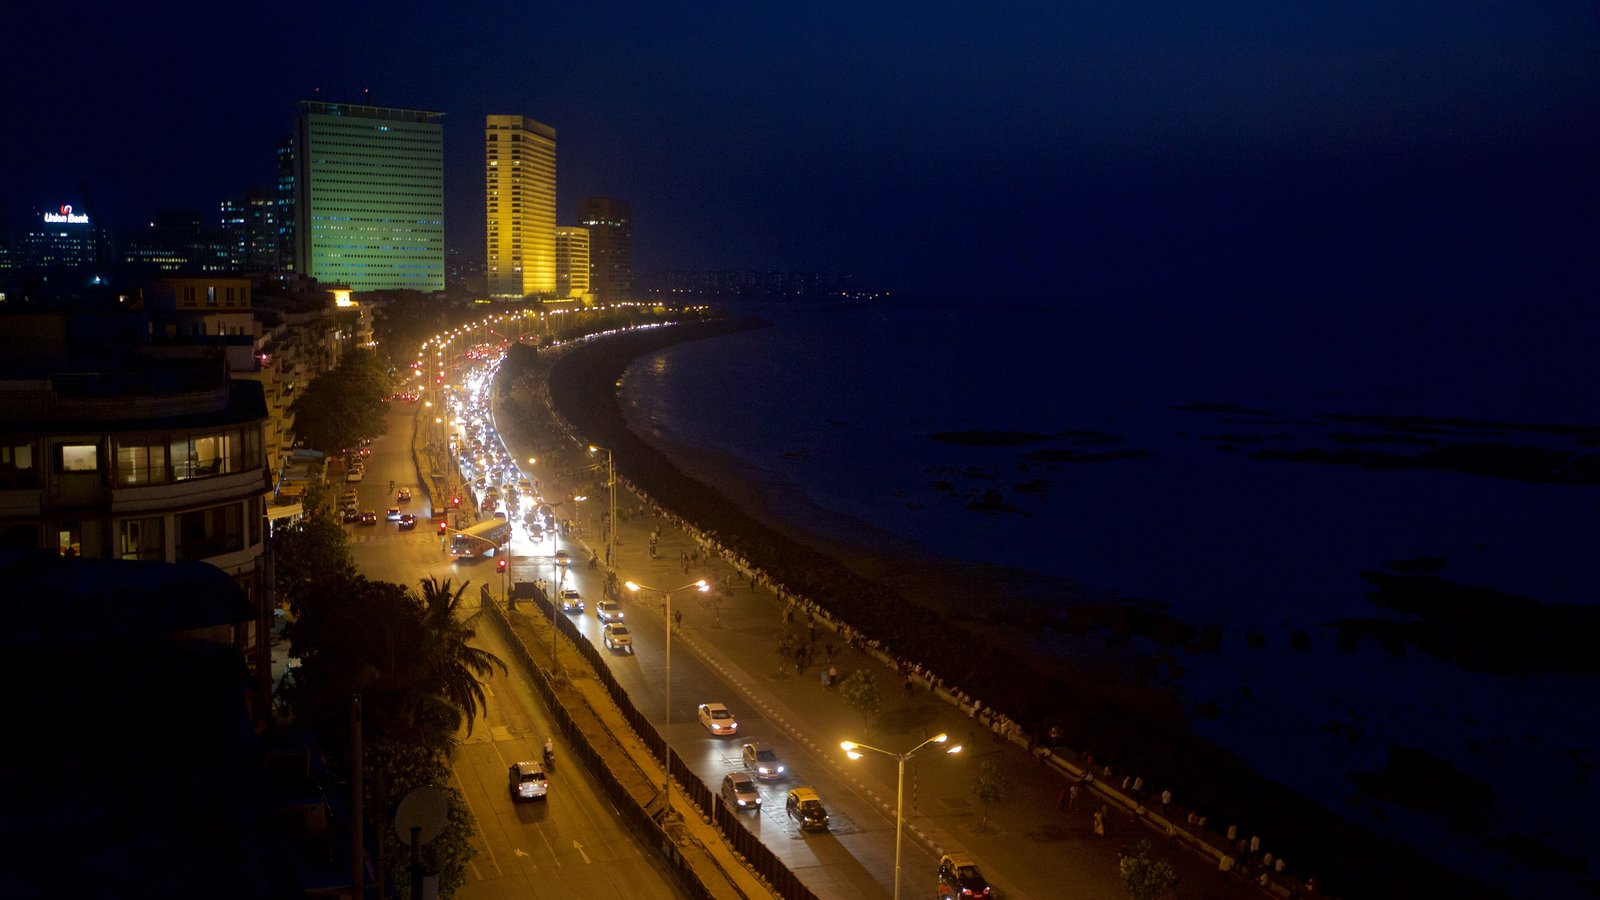 Marine drive pictures view photos images of marine drive marine drive showing night scenes stopboris Gallery